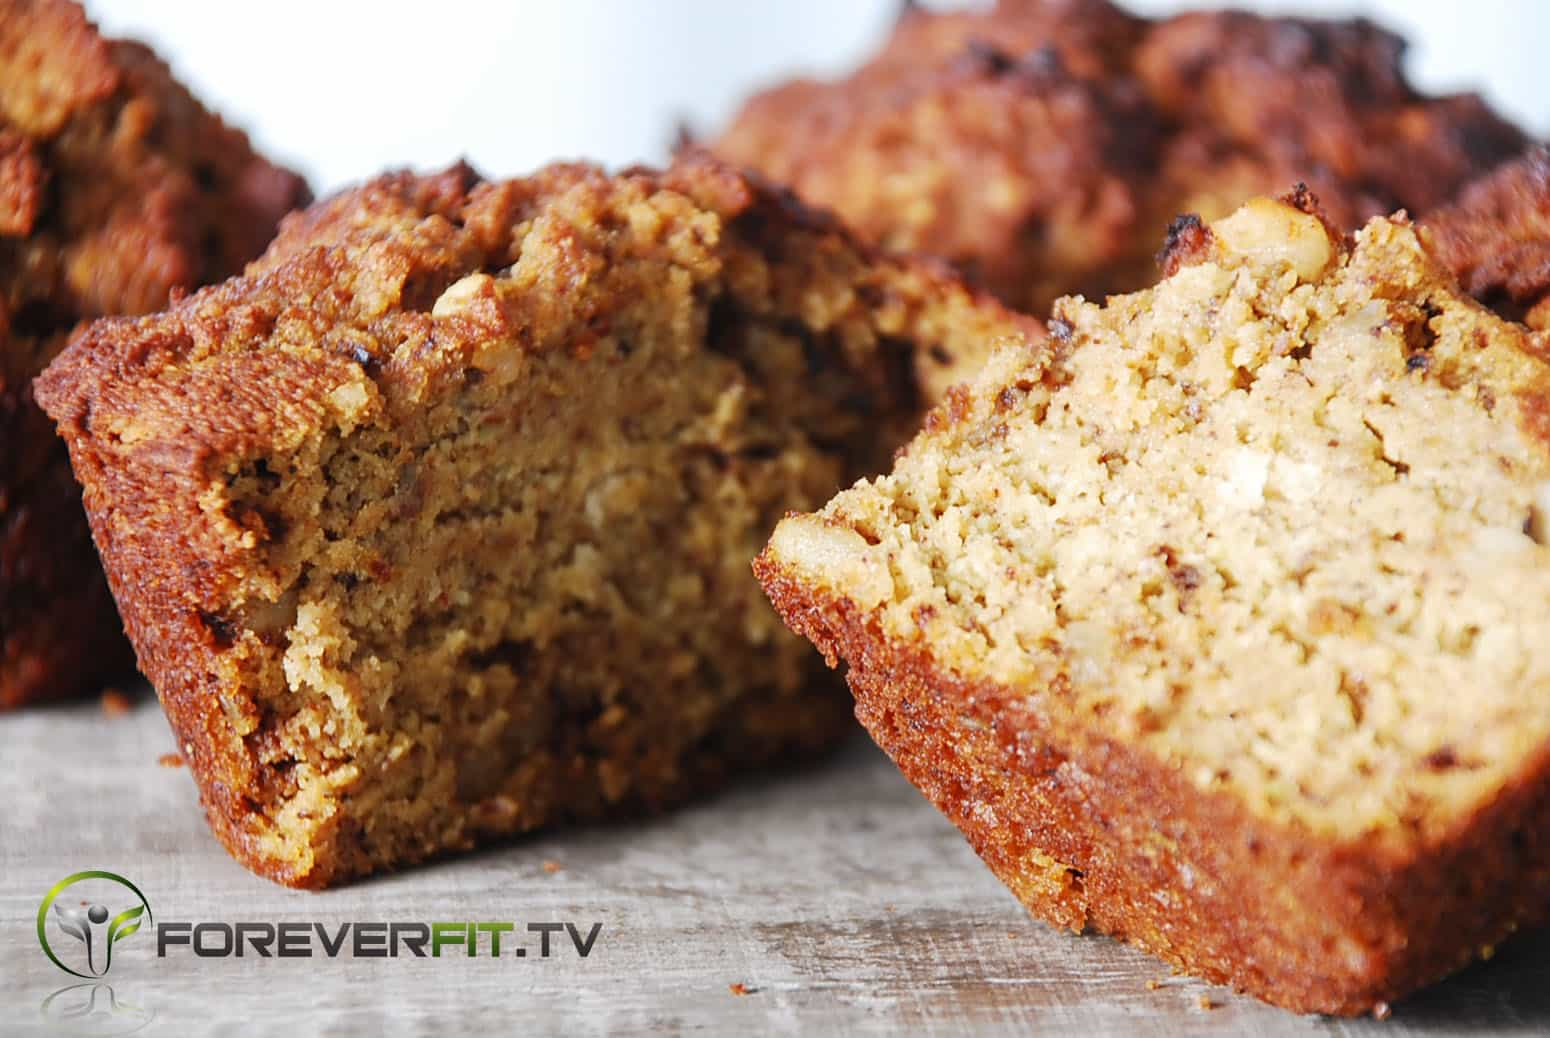 Avocado and banana muffins recipe foreverfit here is a fantastic recipe for avocado and banana muffins forumfinder Images